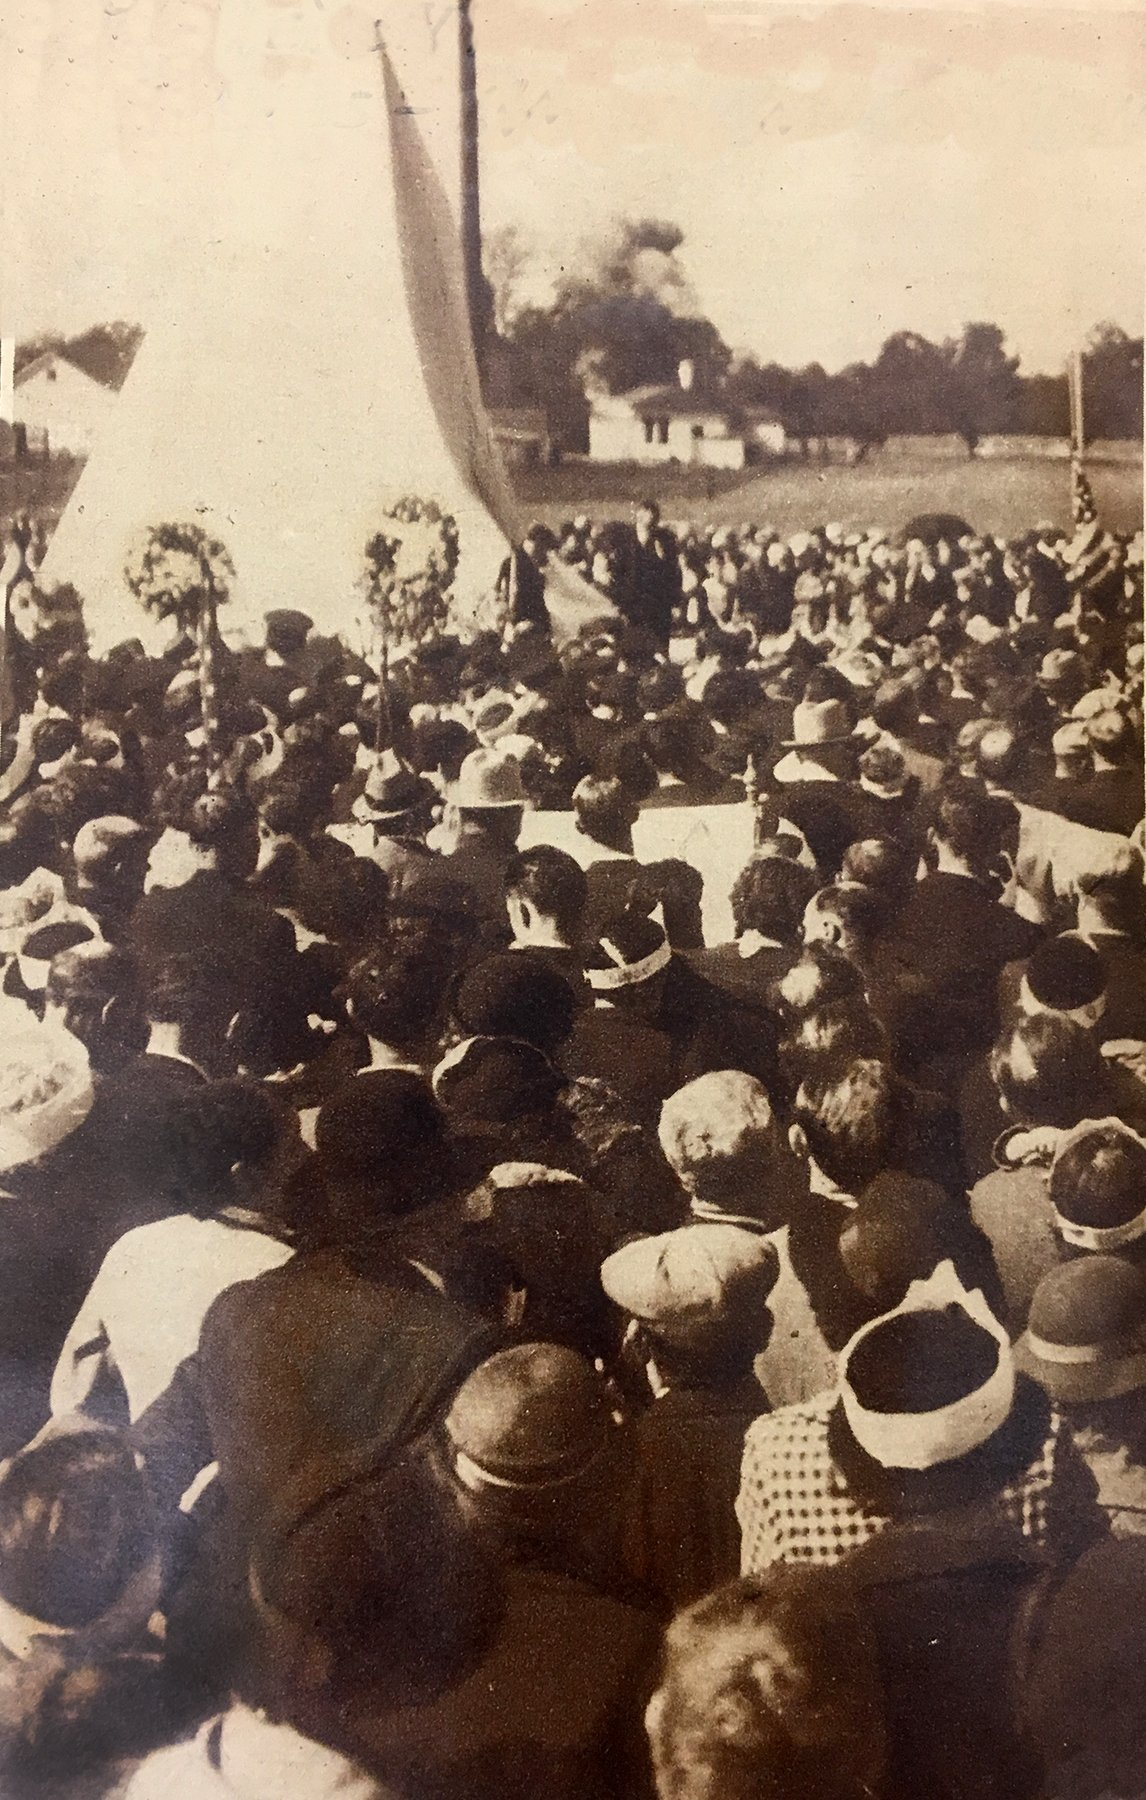 Monument dedication: Another image of the crowd anticipating the unveiling of the Mother Jones Monument October 1936.